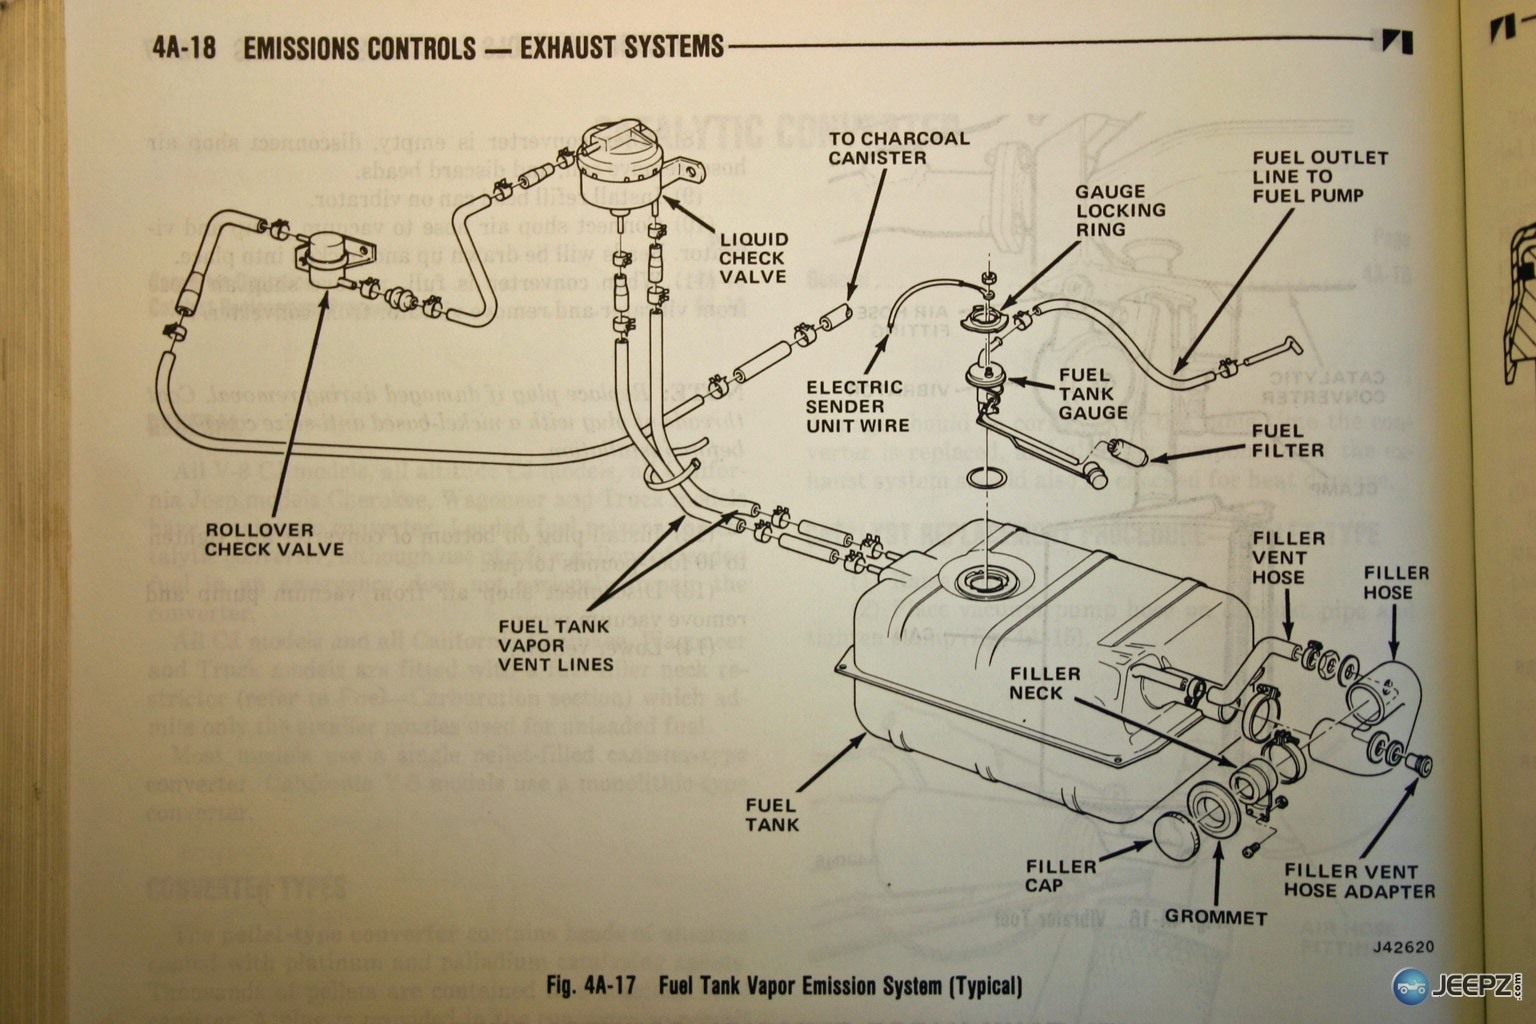 Toyota Maf Sensor Wiring Diagram Schematics Diagrams Jeep Liberty Fuel Filter Location Get Free Image 47